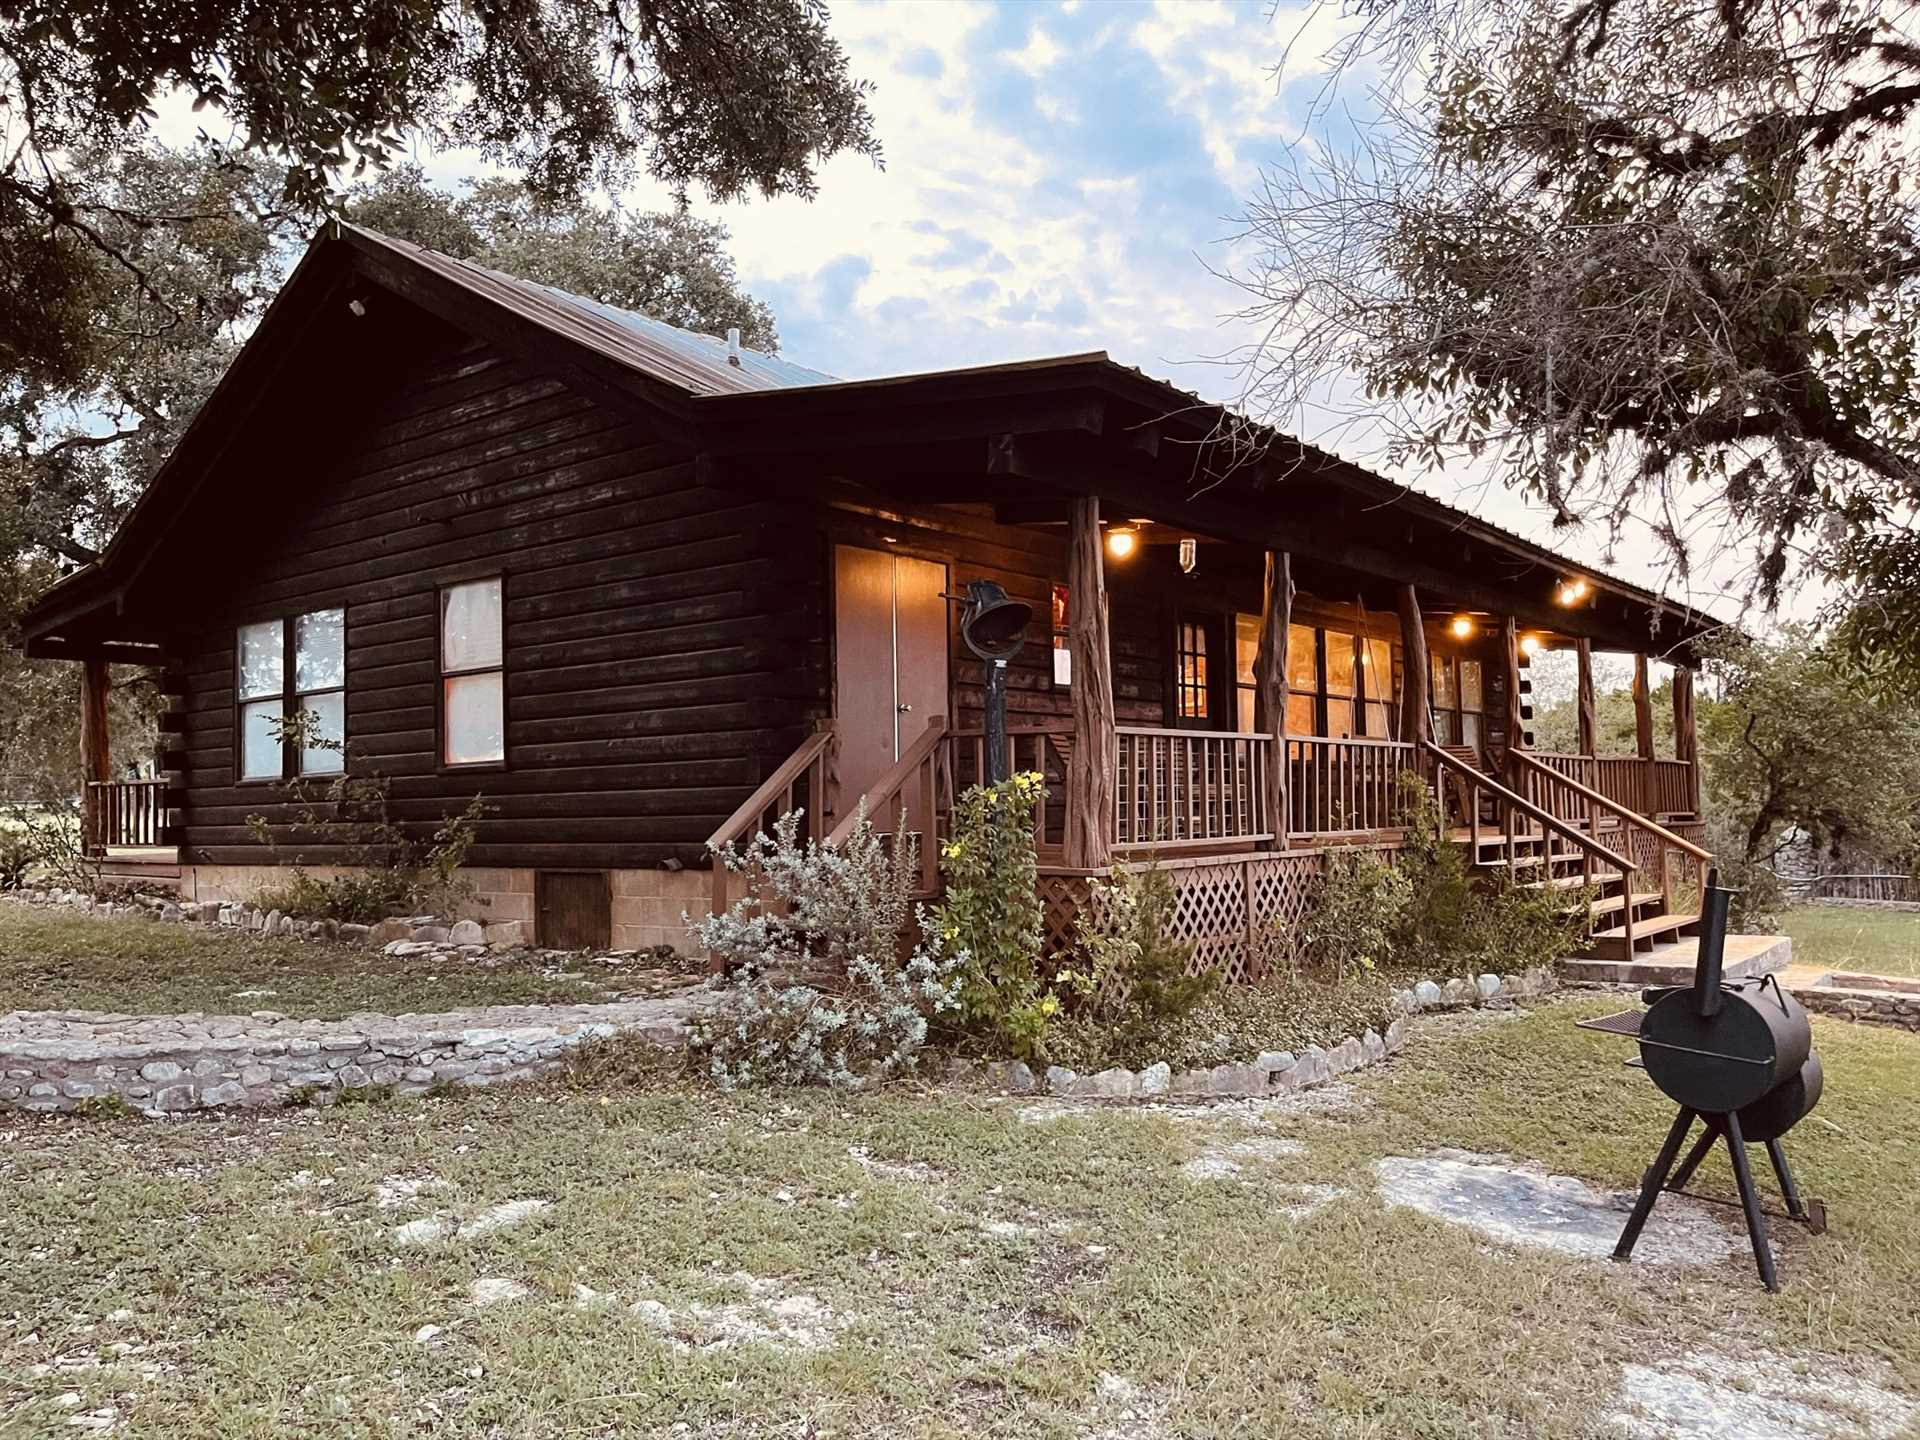 Welcome to the Lightning Bug Springs Lodge! This sweet Hill Country haven serves as a quiet country escape for up to six guests.